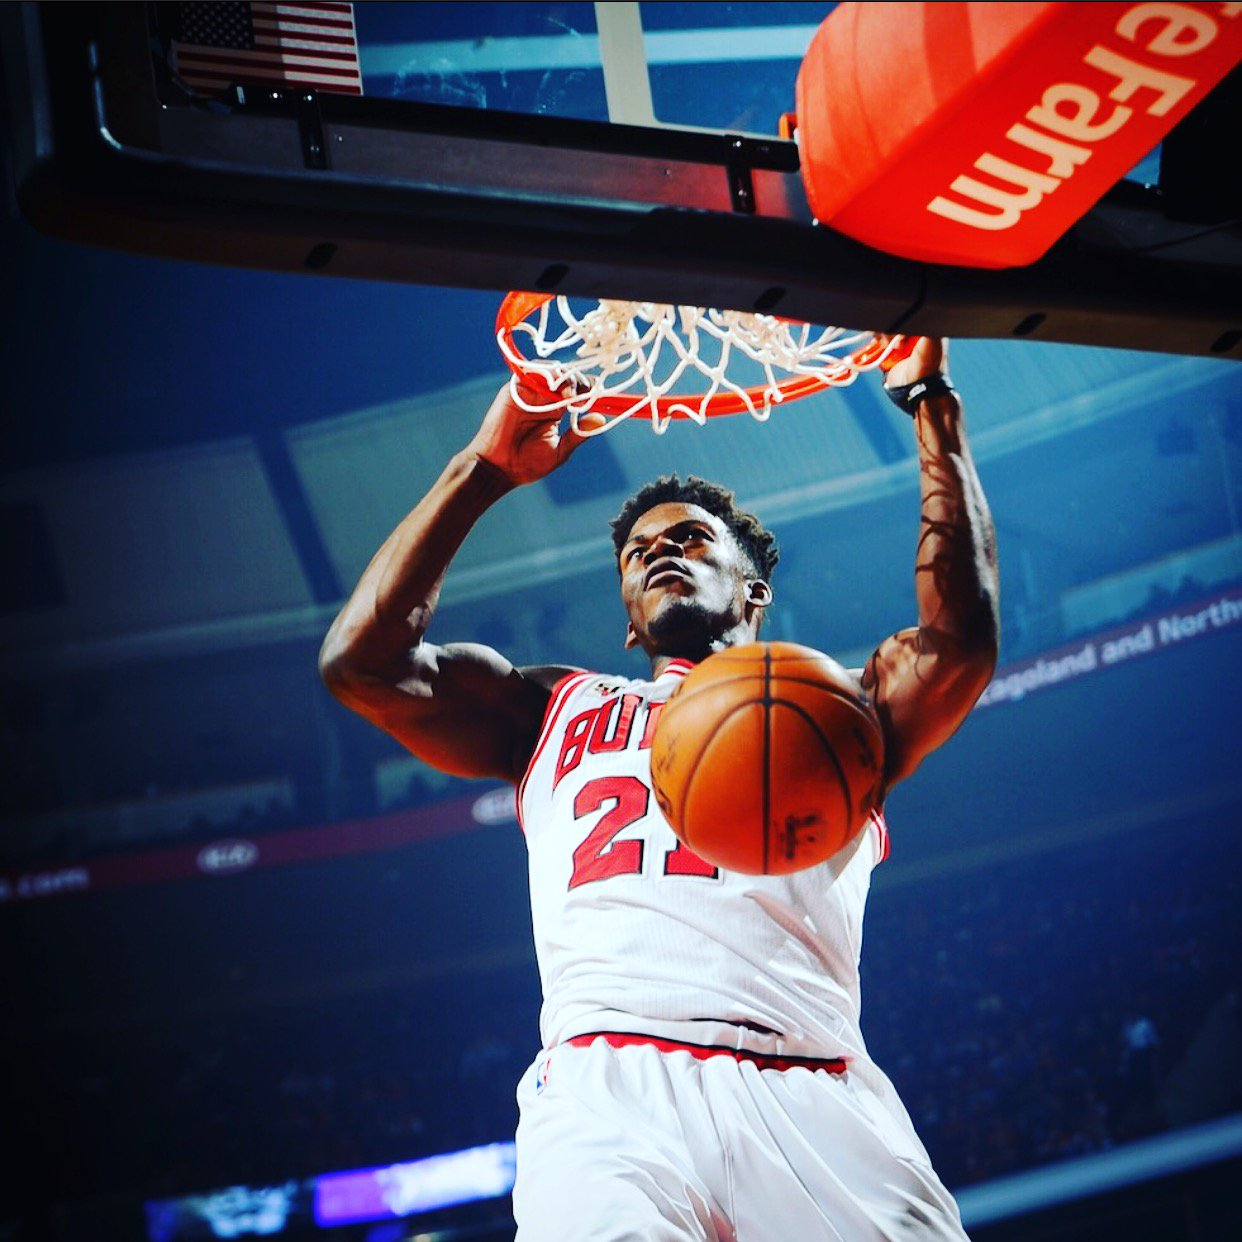 RT to VOTE Jimmy Butler for the 2016 @NBAAllStar game! #NBAVote https://t.co/NxlP34FiRx